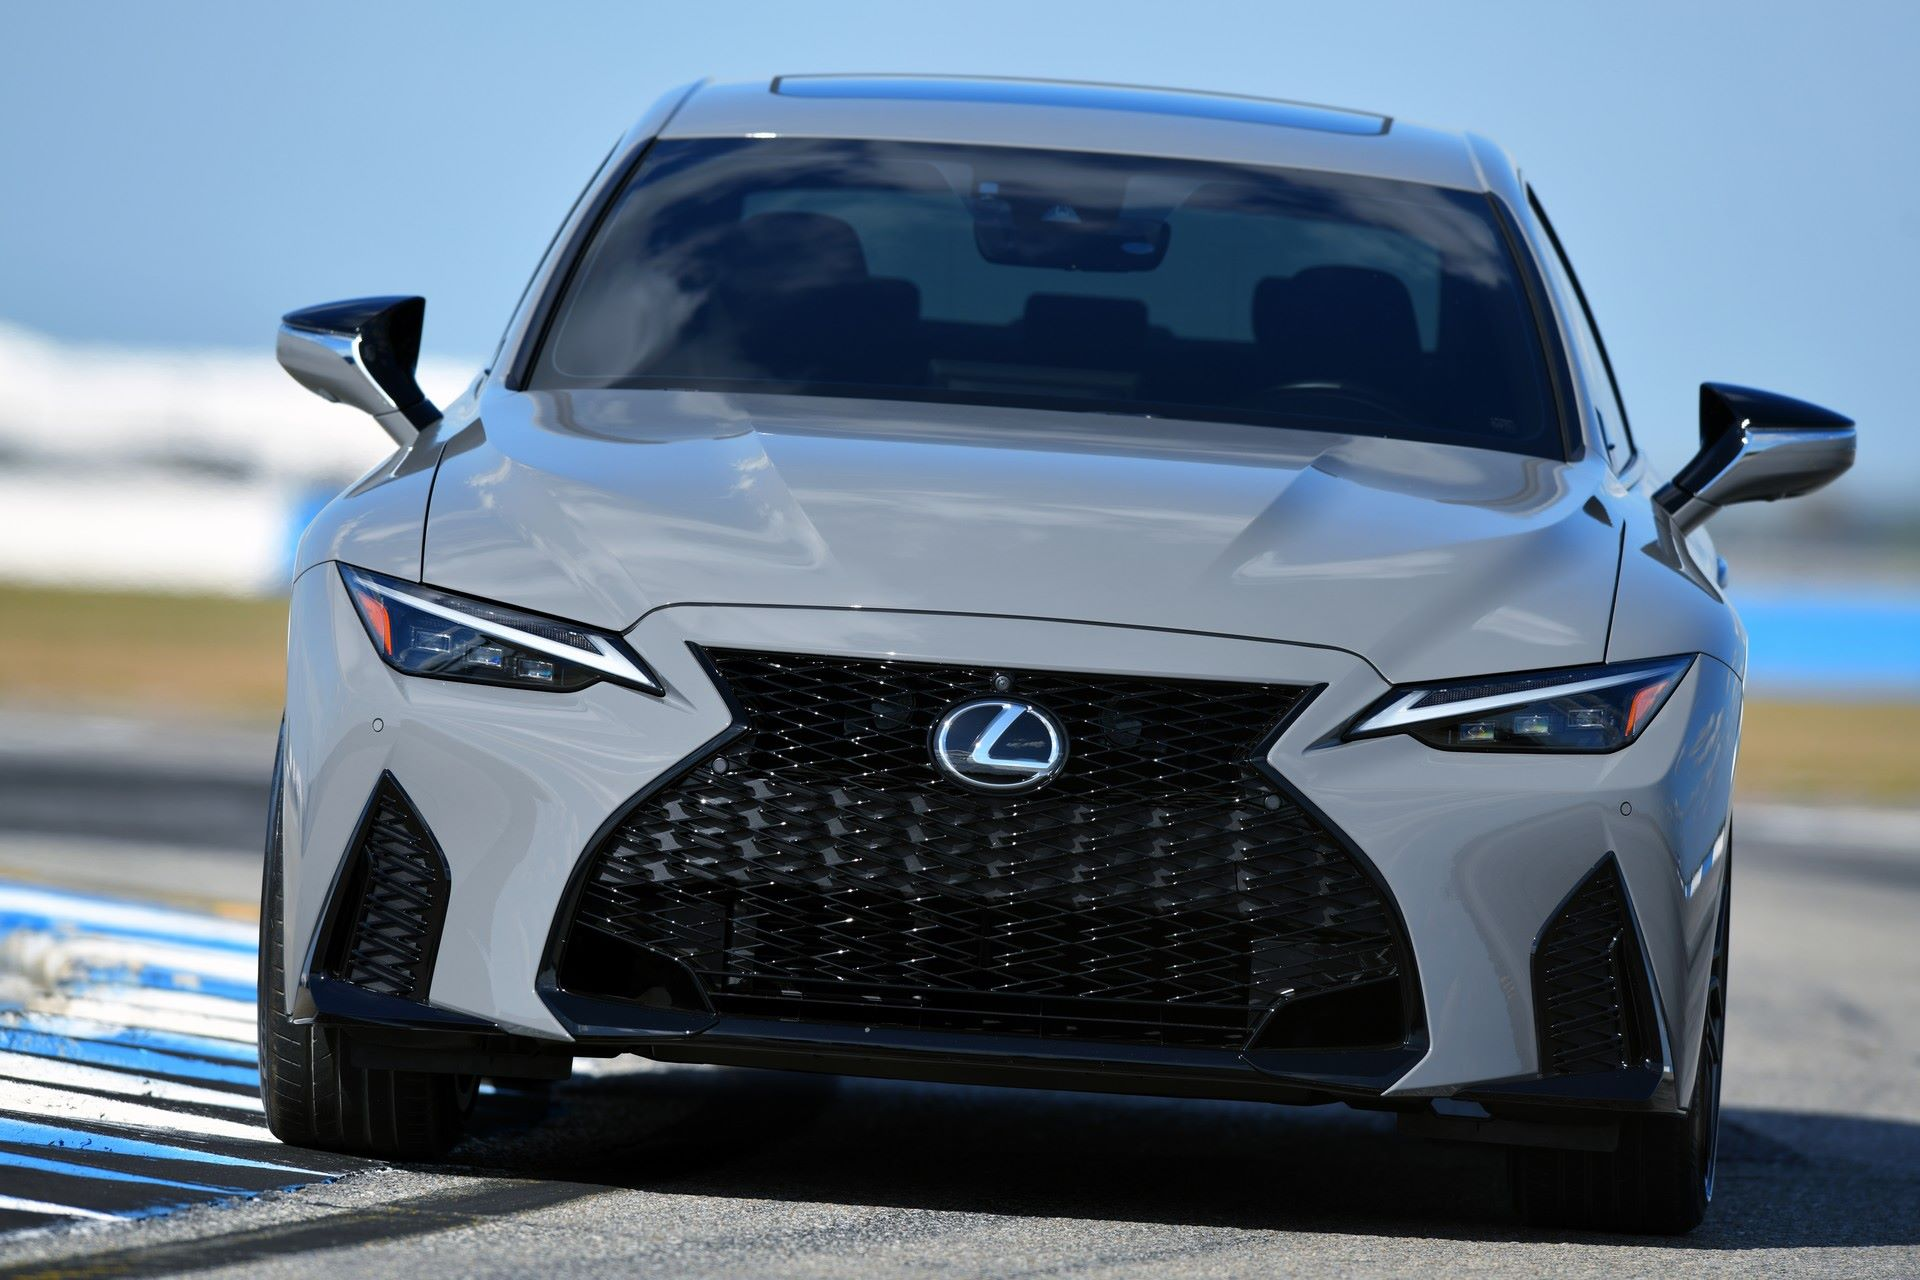 Lexus-IS-500-F-Sport-Performance-Launch-Edition-32